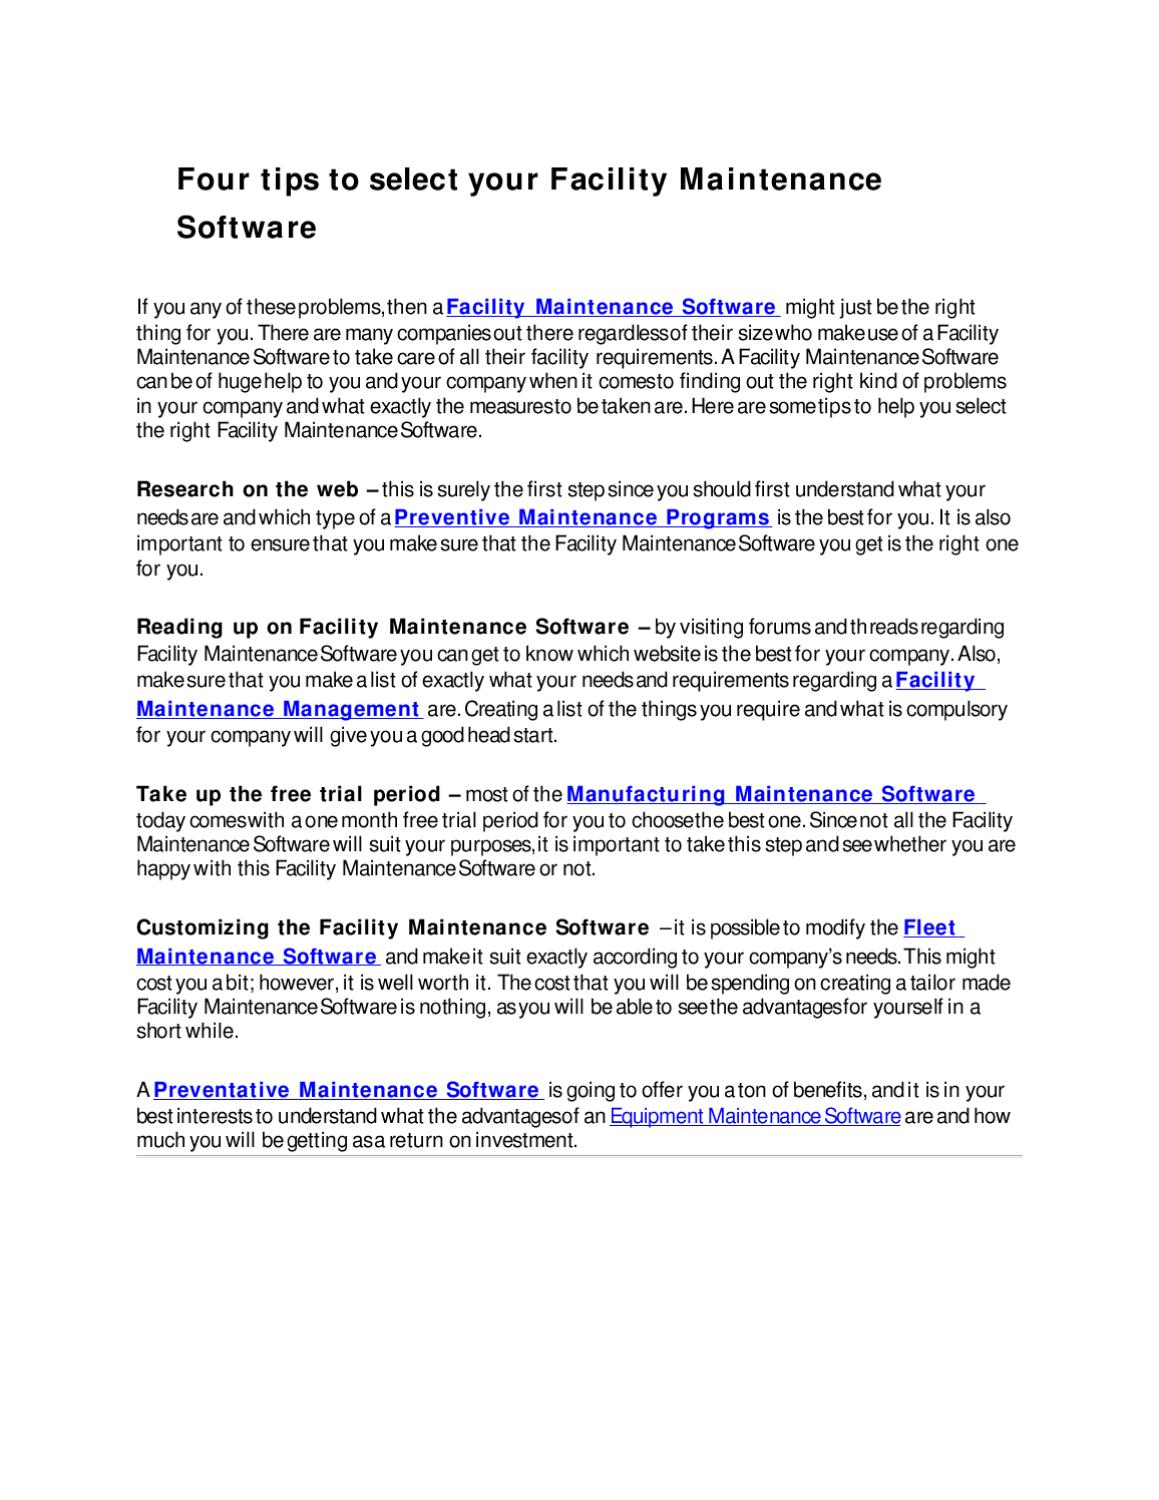 Four tips to select your Facility Maintenance Software by Toshya Tem